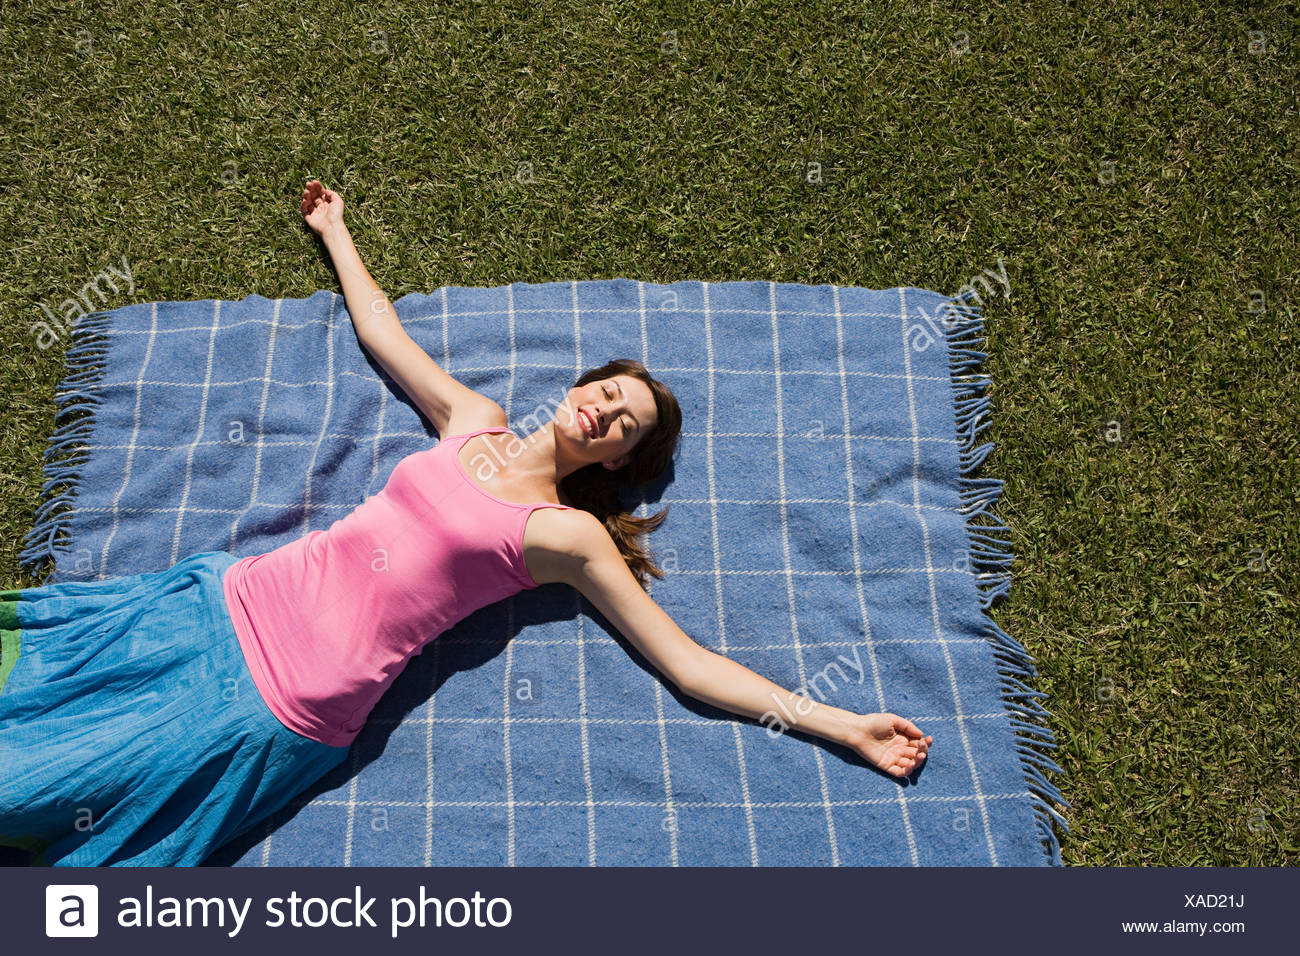 Woman lying on picnic blanket with arms outstretched - Stock Image